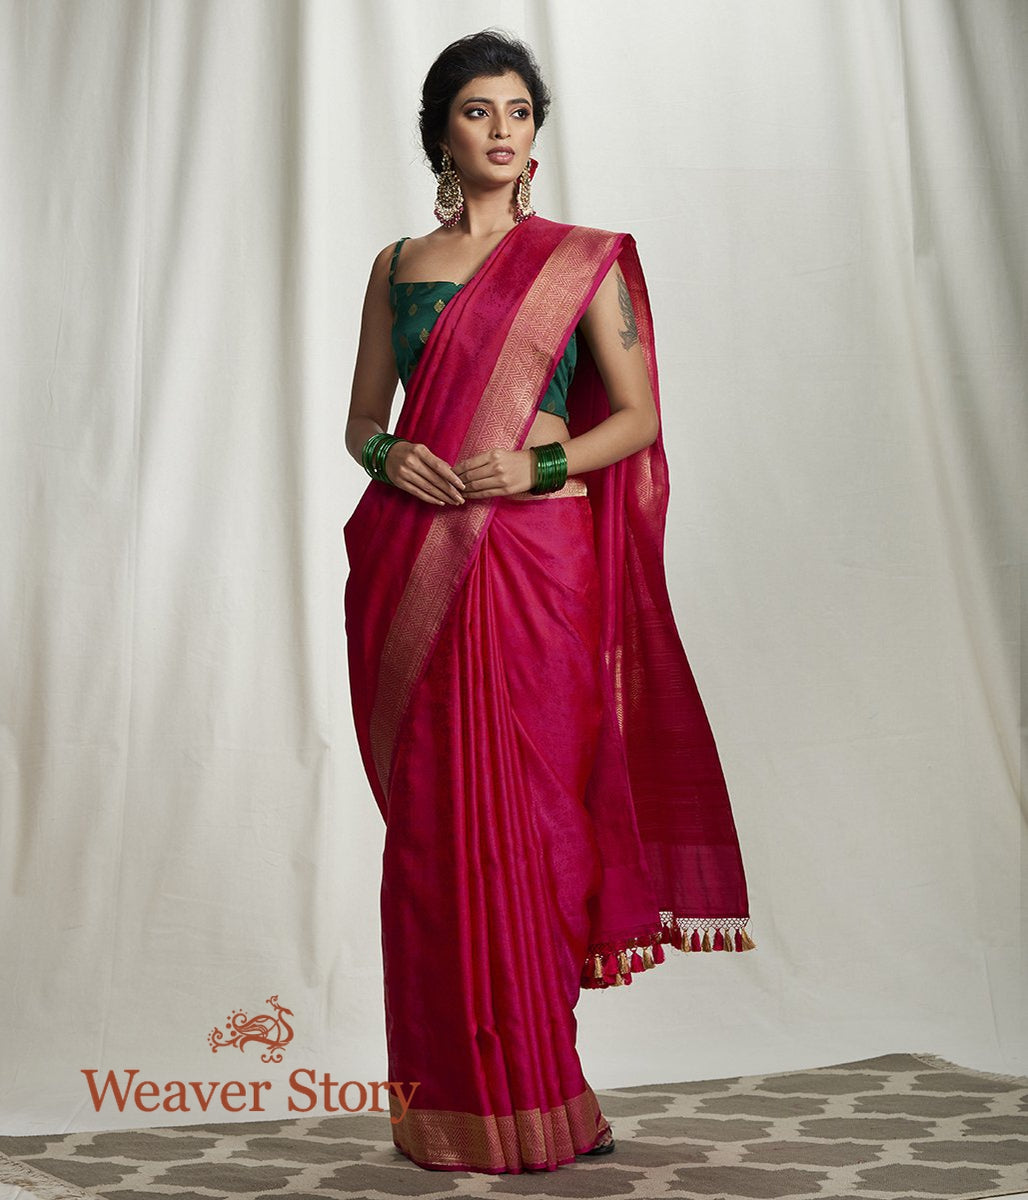 Handwoven Majenta Self Weave Tanchoi Saree with Chevron Border